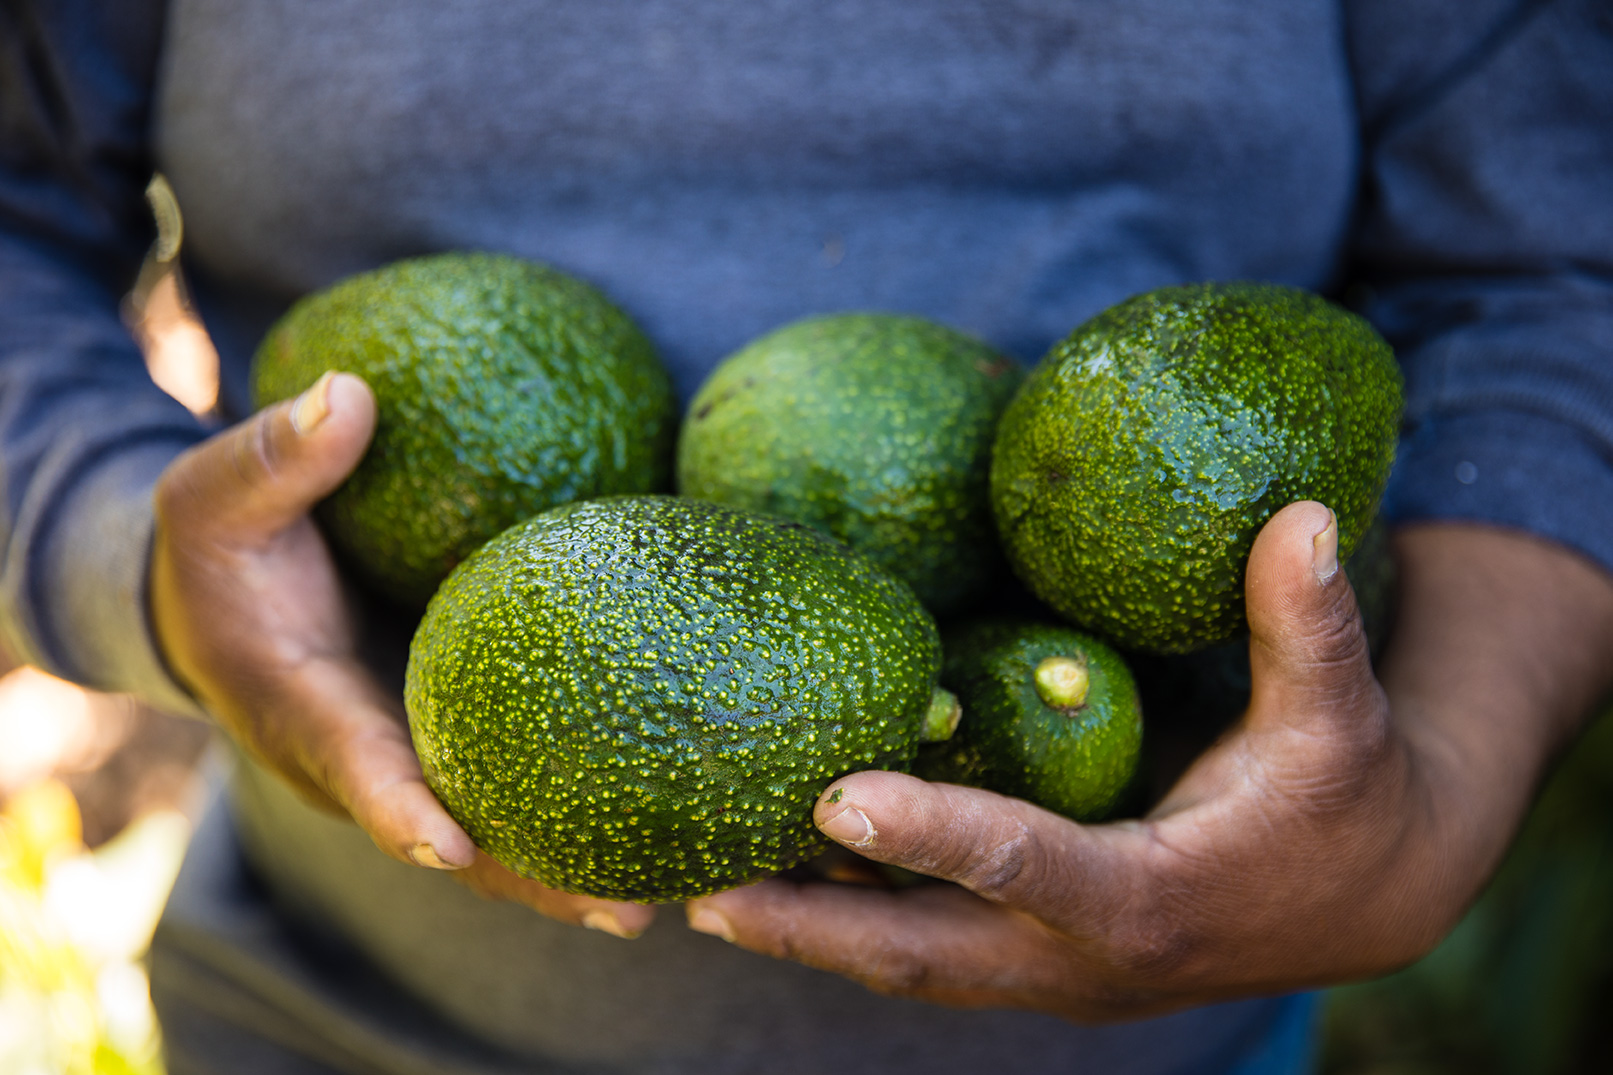 Fresh Avocados, just picked from the trees